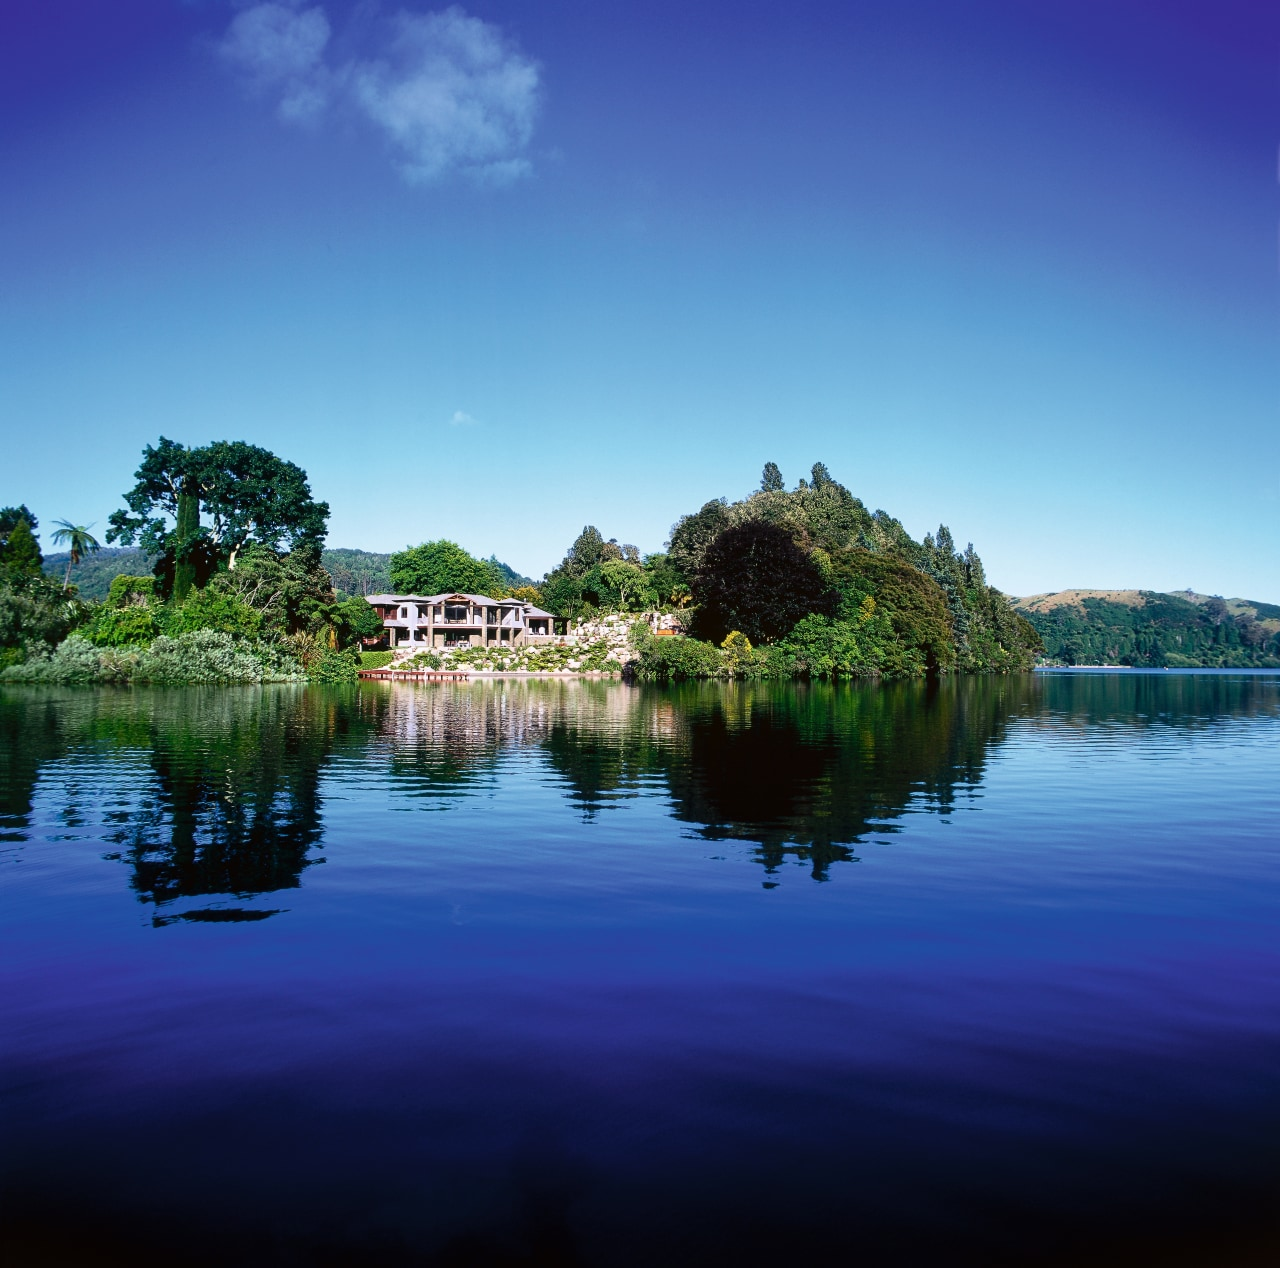 View of lakeside property. House is surrounded by atmosphere, bank, body of water, calm, cloud, daytime, grass, horizon, lake, landscape, loch, morning, nature, pond, reflection, reservoir, river, sky, tree, water, water resources, watercourse, waterway, wetland, blue, teal